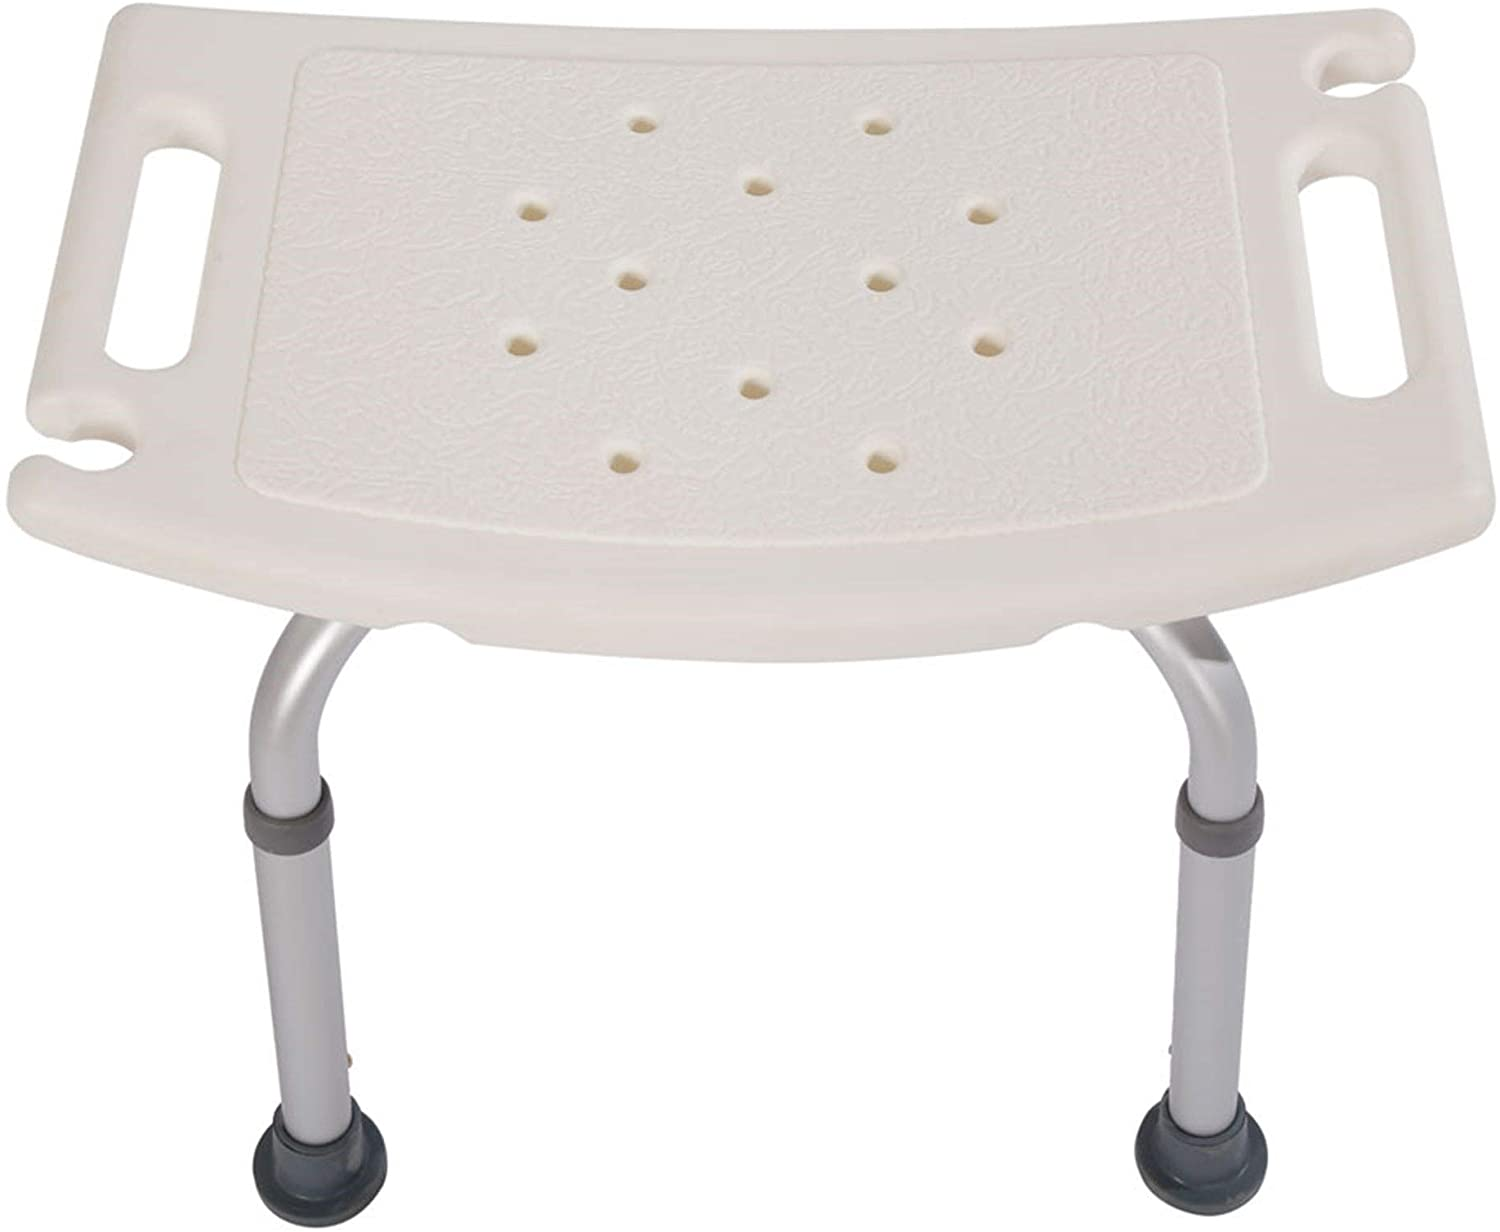 Aluminium Alloy Bath Chair Shower Stool Without Back White Solid Color Modern Contemporary Plastic